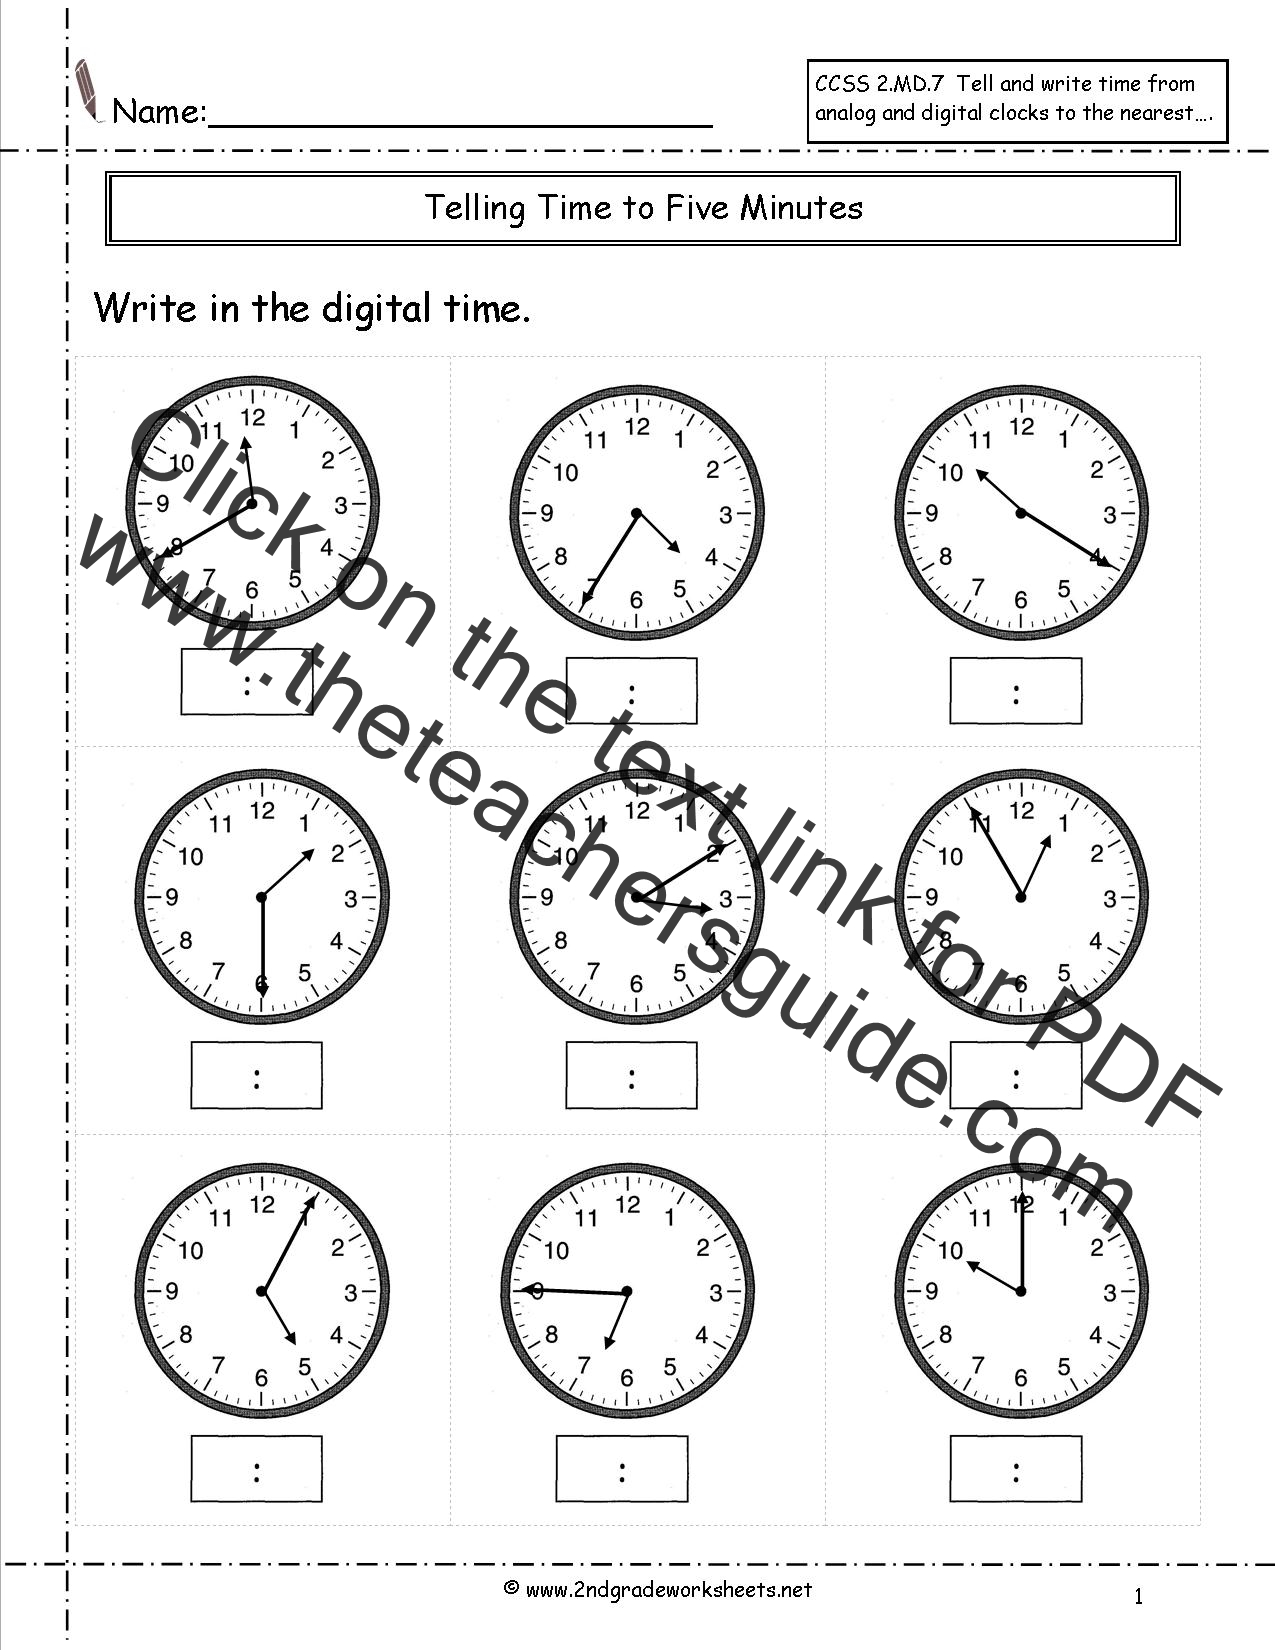 Worksheet Telling Time 2nd Grade telling and writing time worksheets to nearest five minutes worksheet